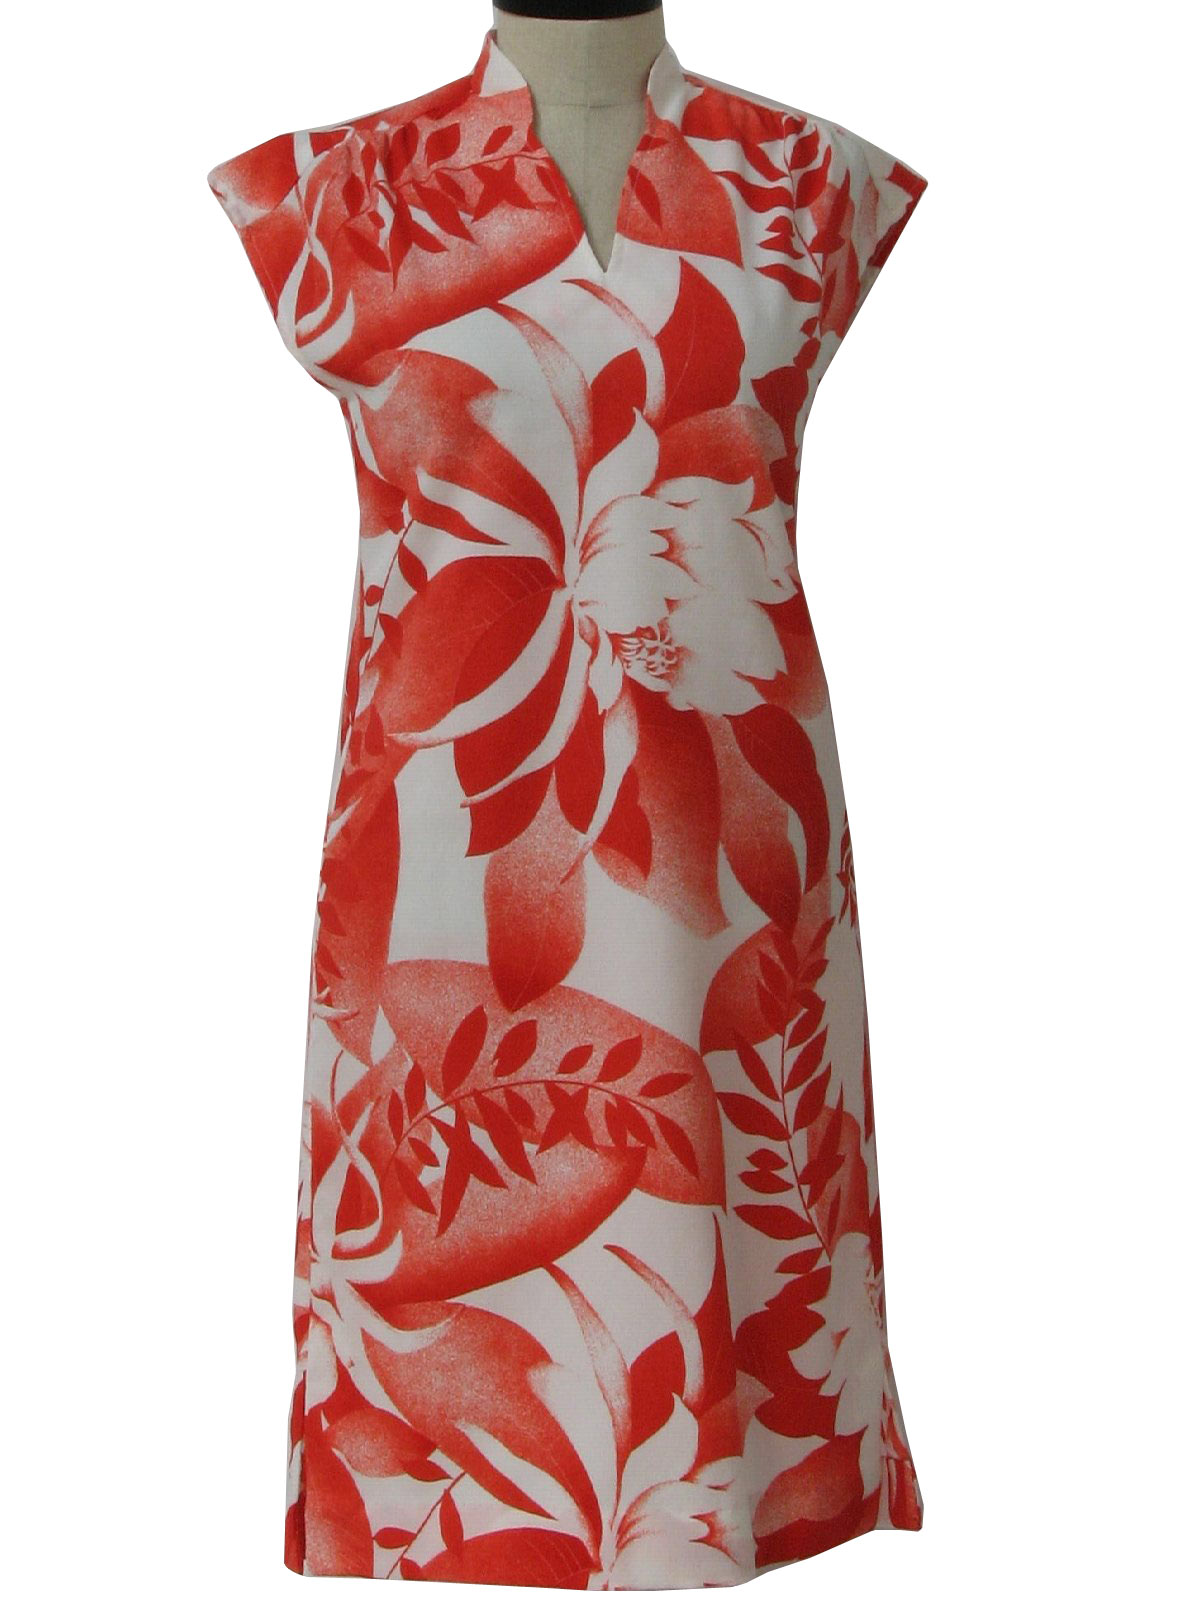 Brilliant Dress Diamond Head Hawaii Ruffle Overlay At Shaka Time Hawaii Clothing